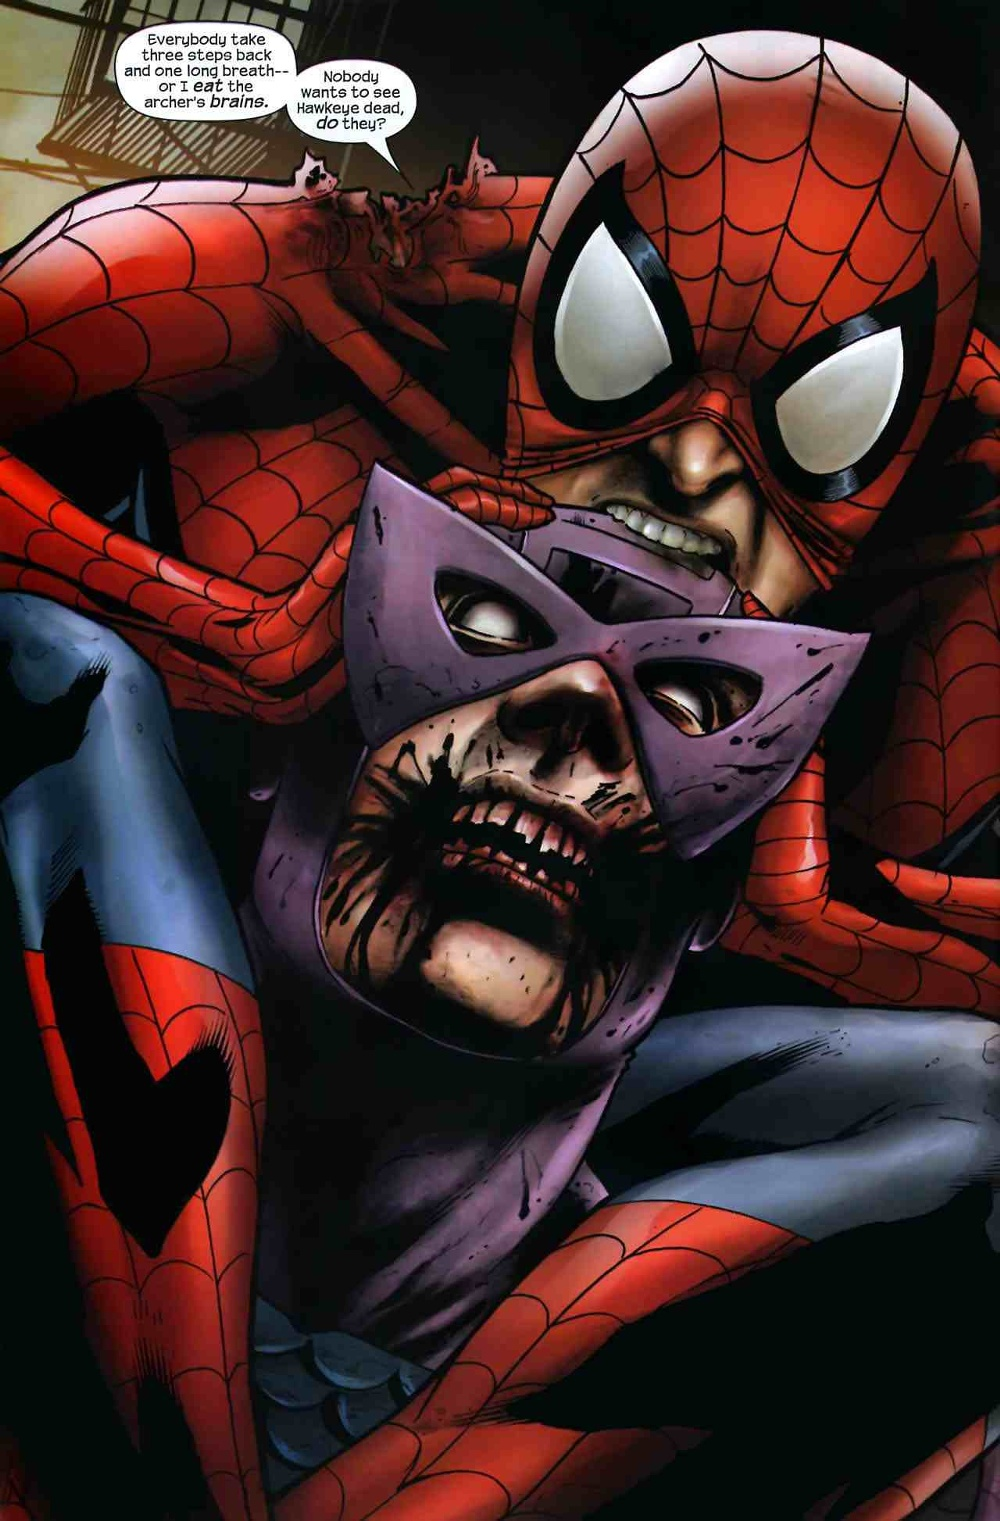 The Amazing Spider Man 2 Video Game Carnage ... page 03.jpg - Spid...